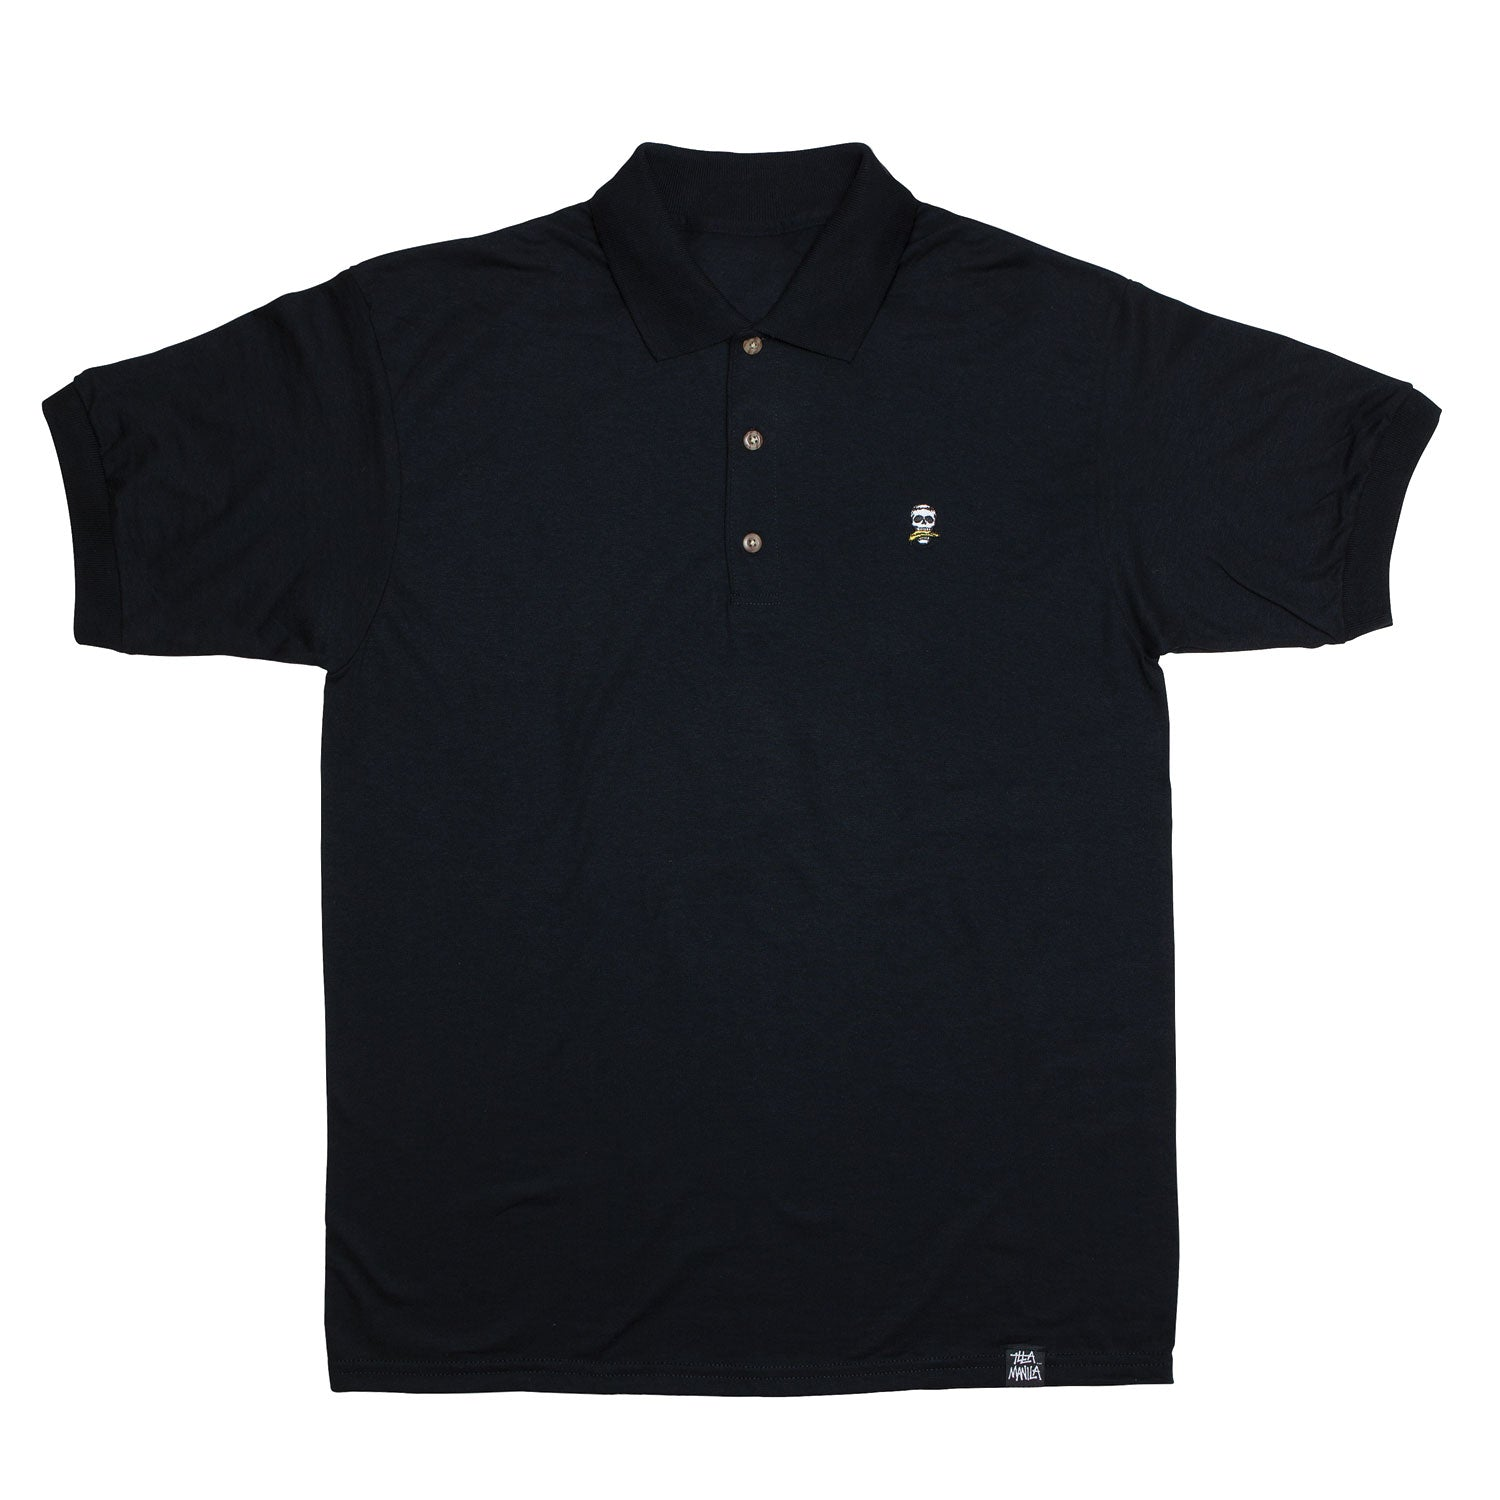 Dead Banana Polo Shirt - Black